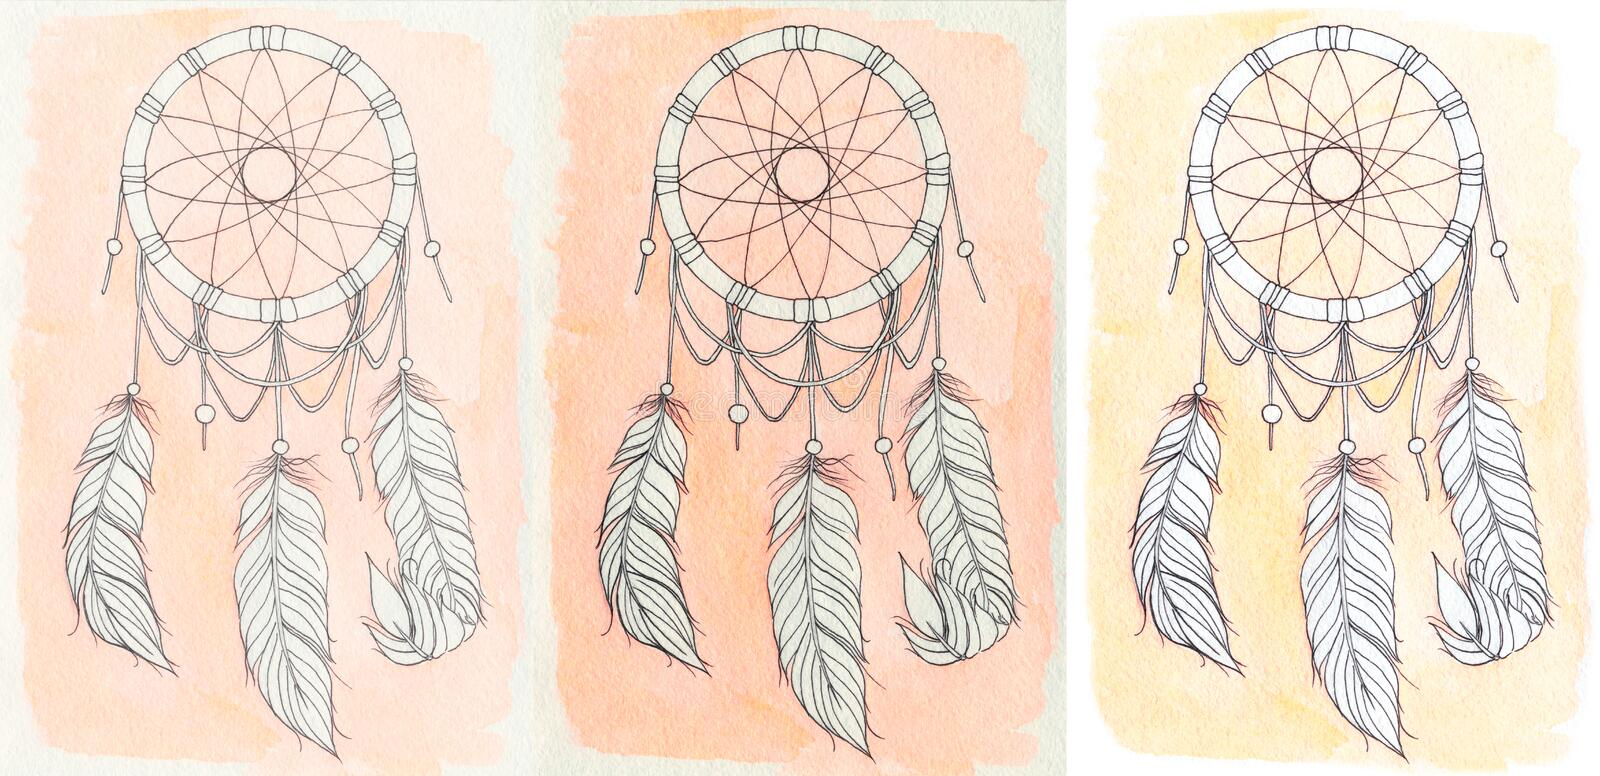 Dreamcatcher dessiné avec l'aquarelle et le stylo illustration libre de droits